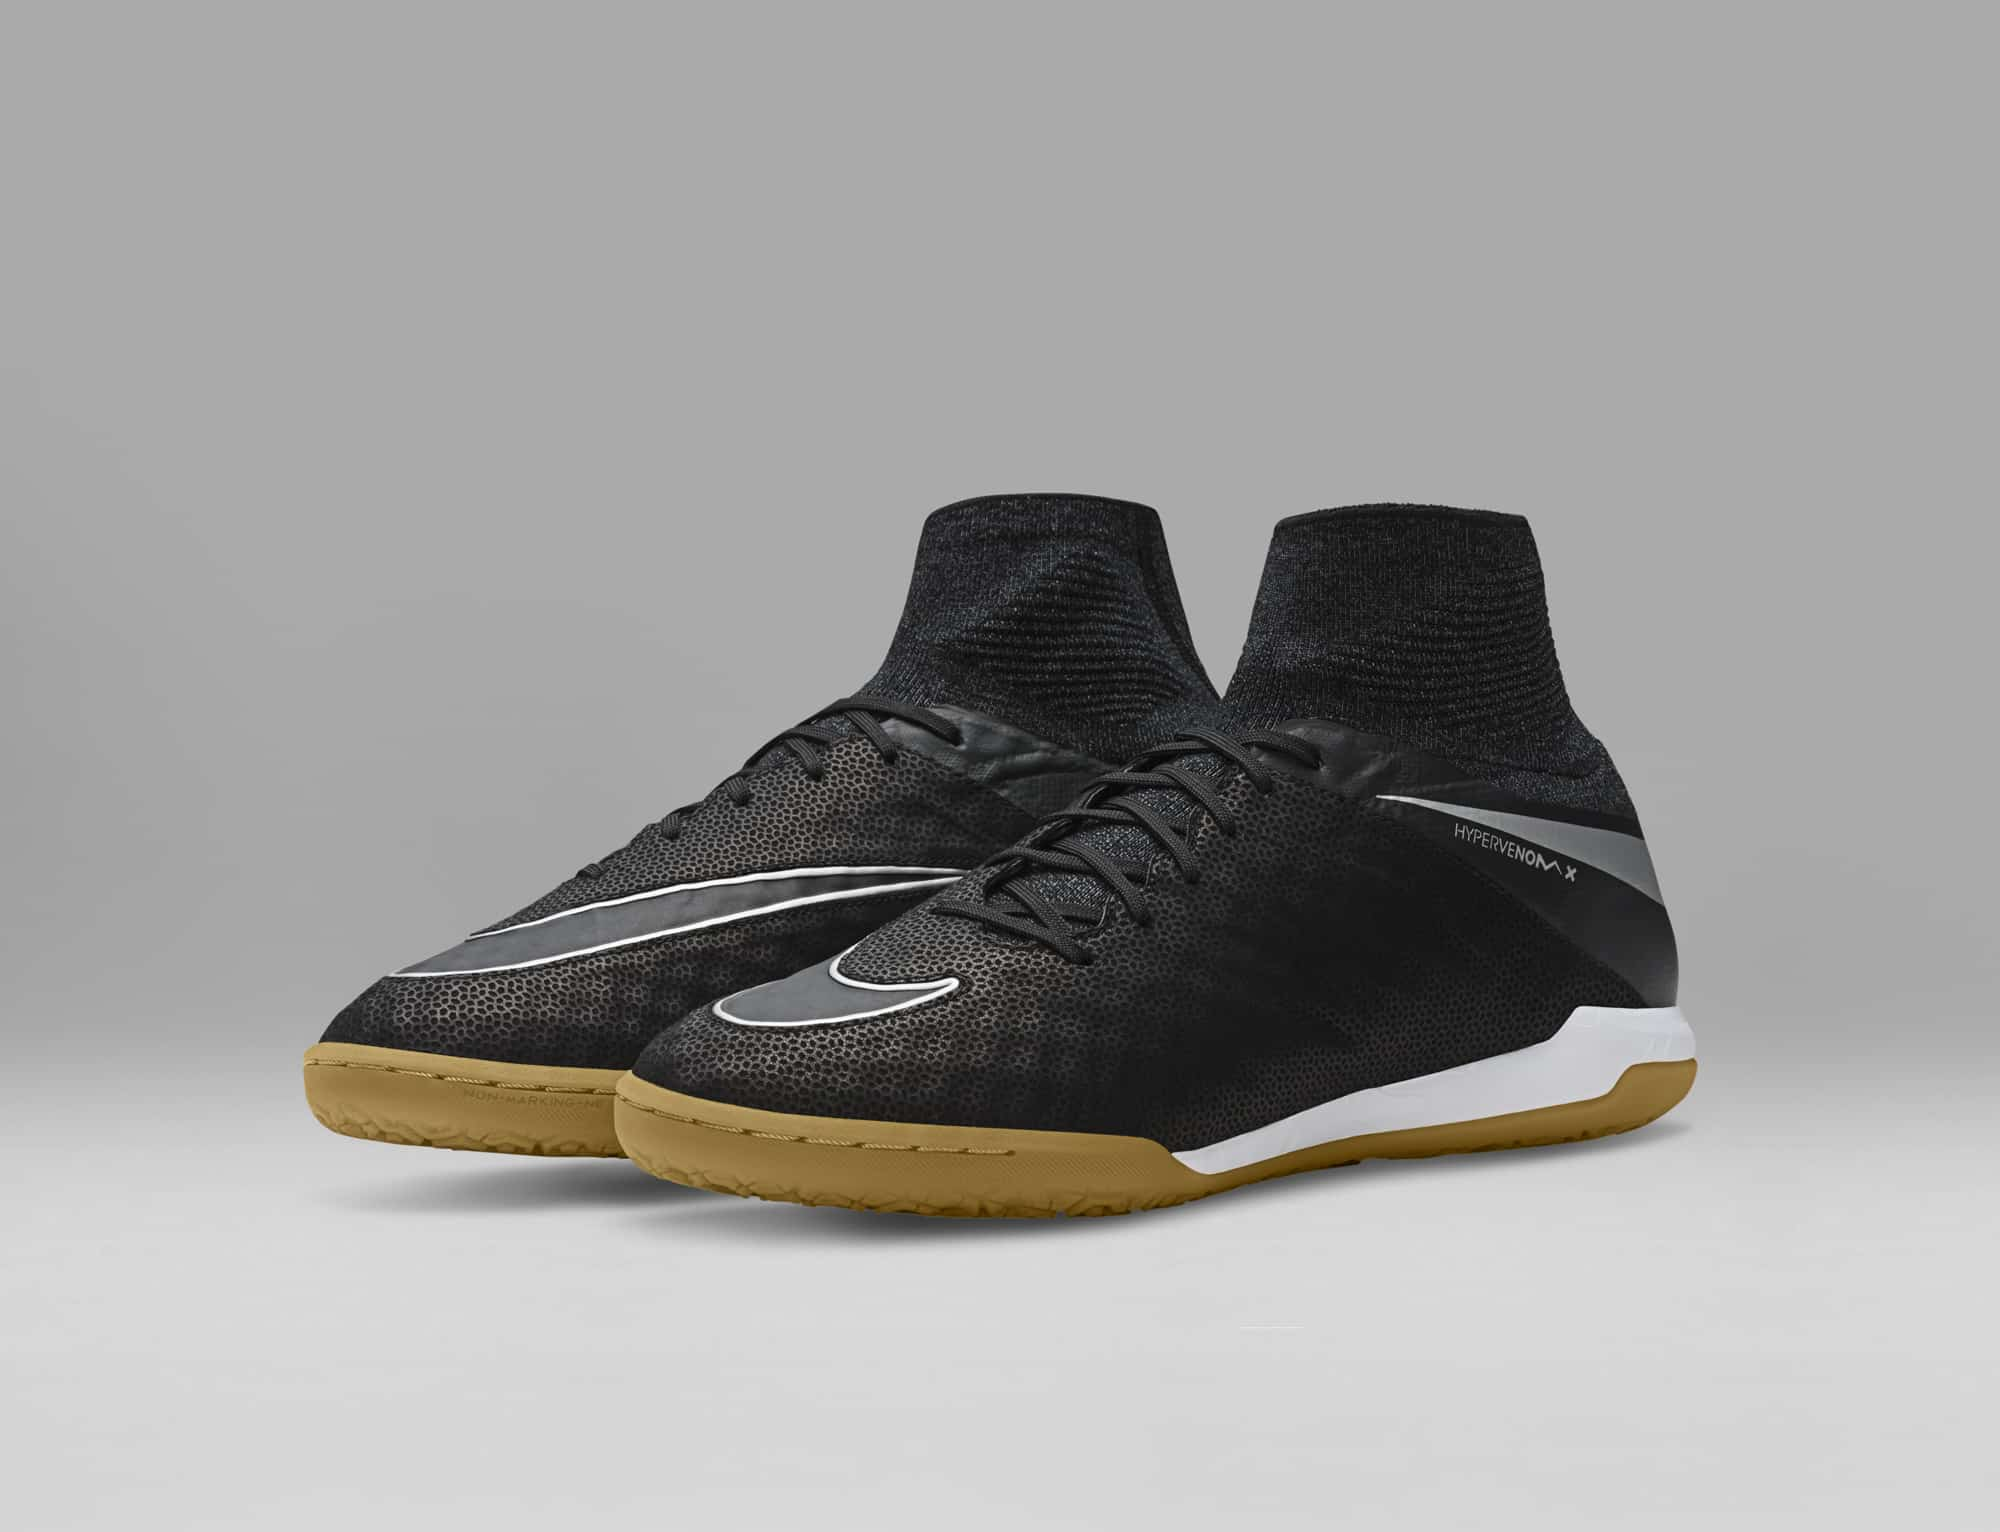 chaussures-football-nike-hypervenomx-proximo-tech-craft-img1